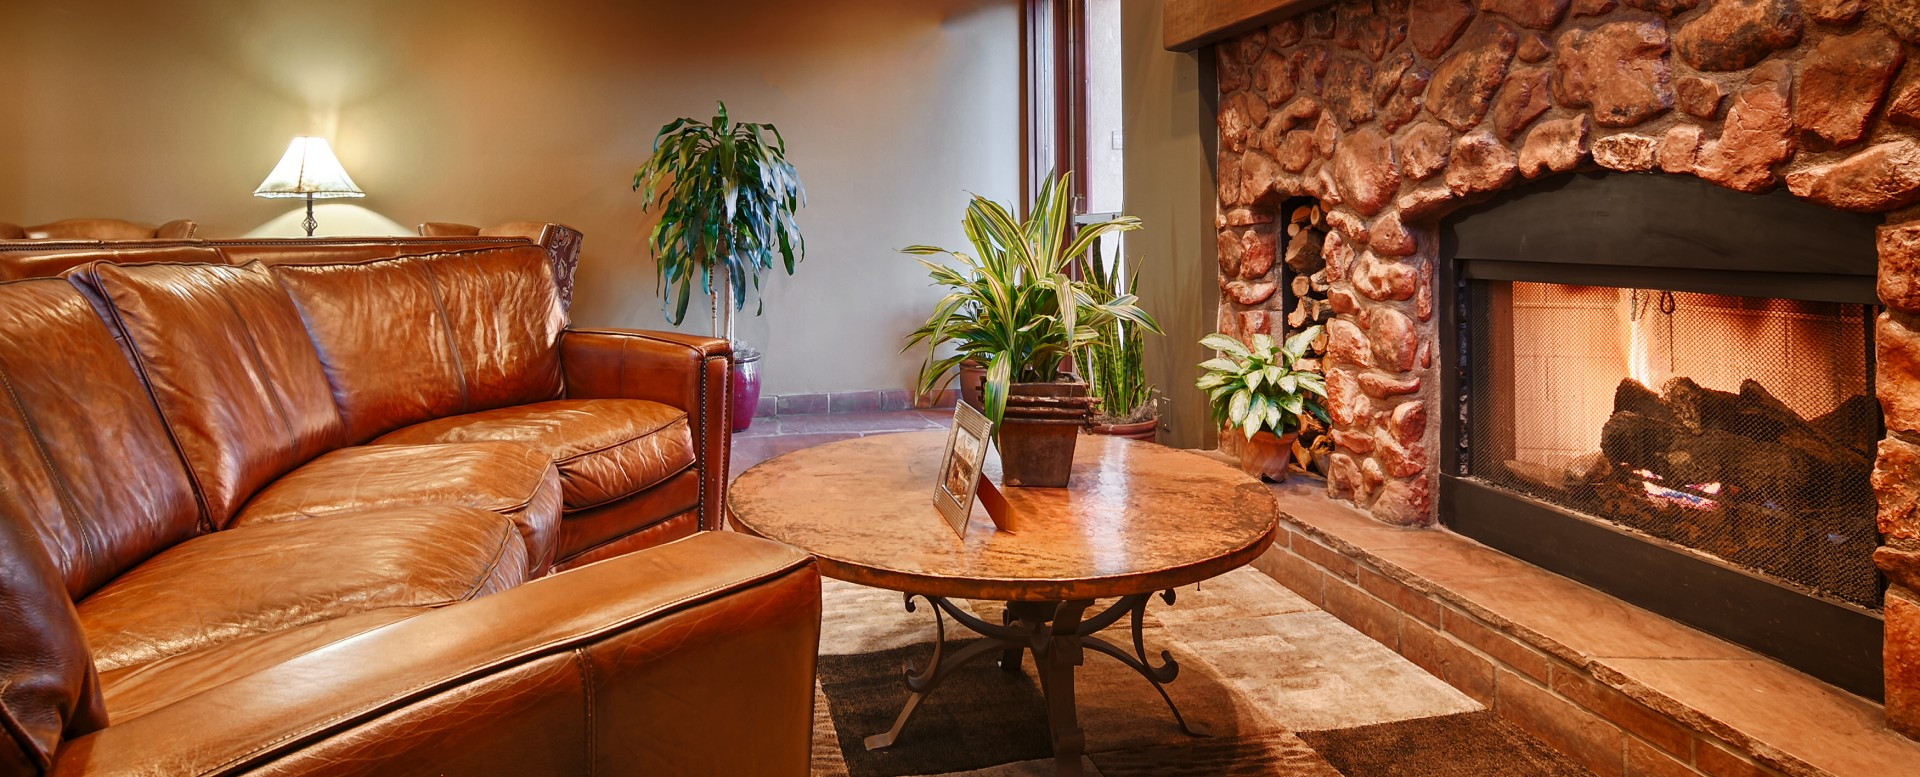 Sky Rock Inn of Sedona-Lobby Seating and Fireplace